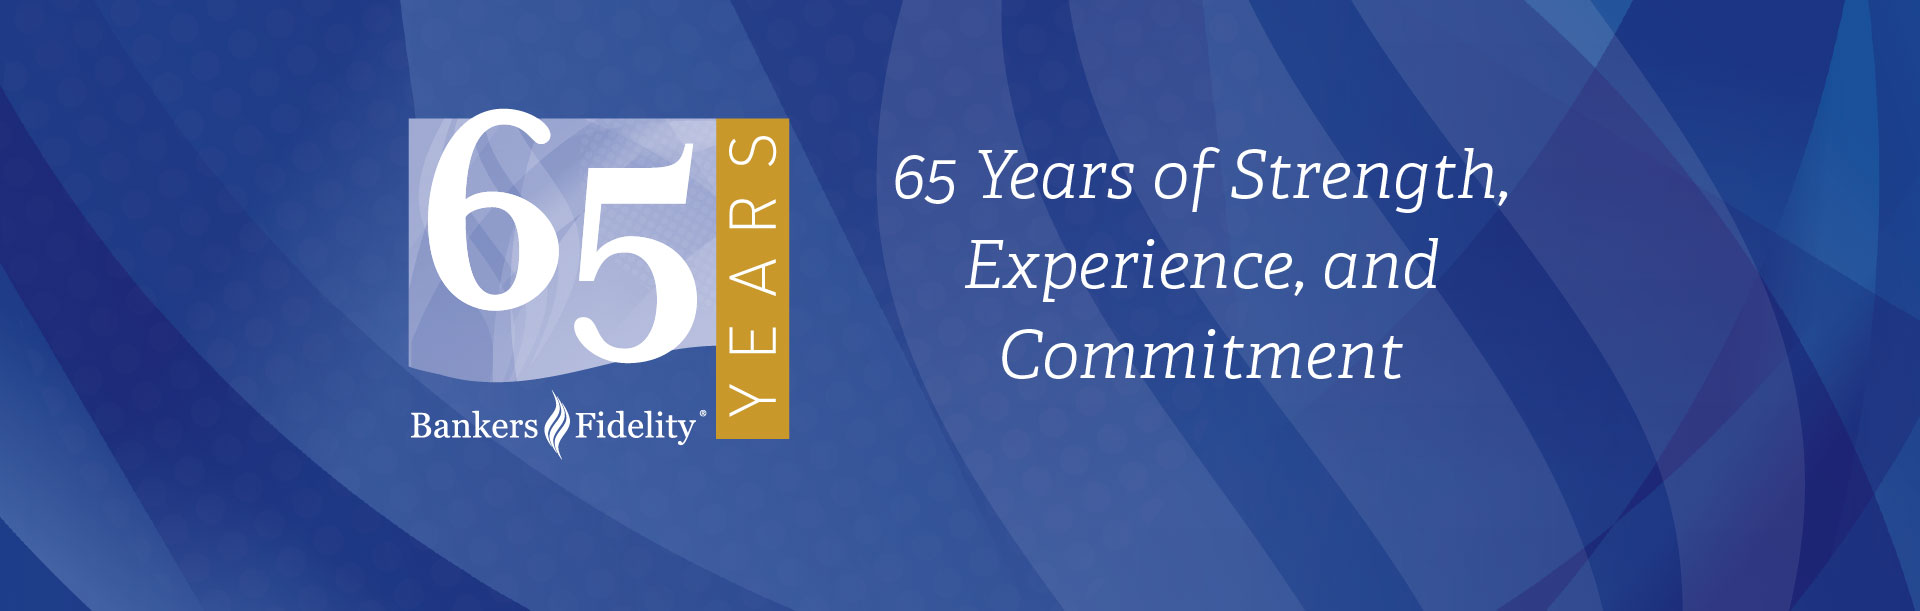 Bankers Fidelity Life Insurance Company 65th Anniversary